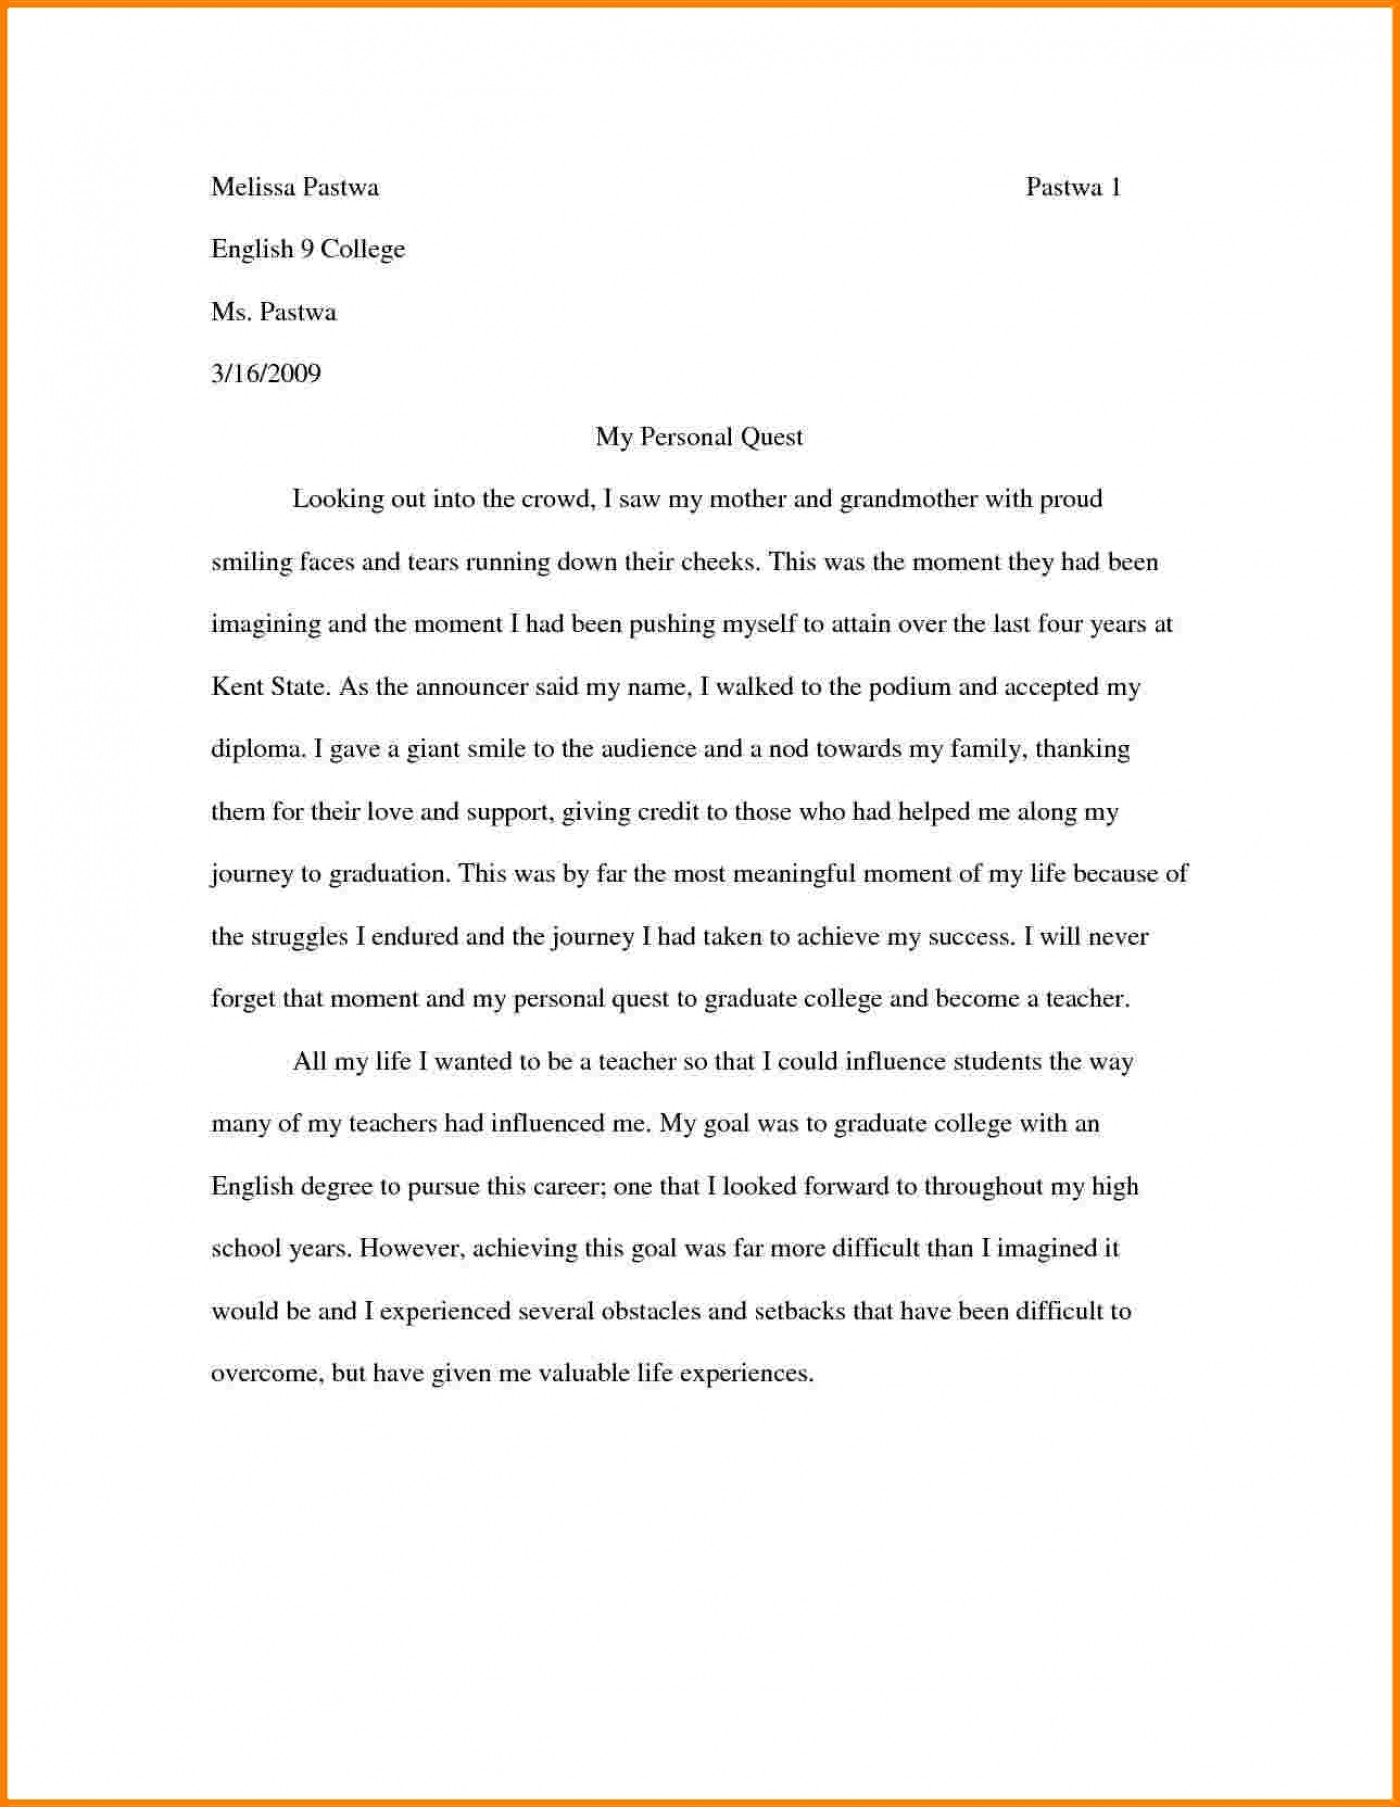 020 3341381556 How To Write Proposal20nt Essay Topics Buy Researchs Cheap Examples20 Good For Awesome Research Papers Interesting Paper History Topic College English High School Students In The Philippines 1400